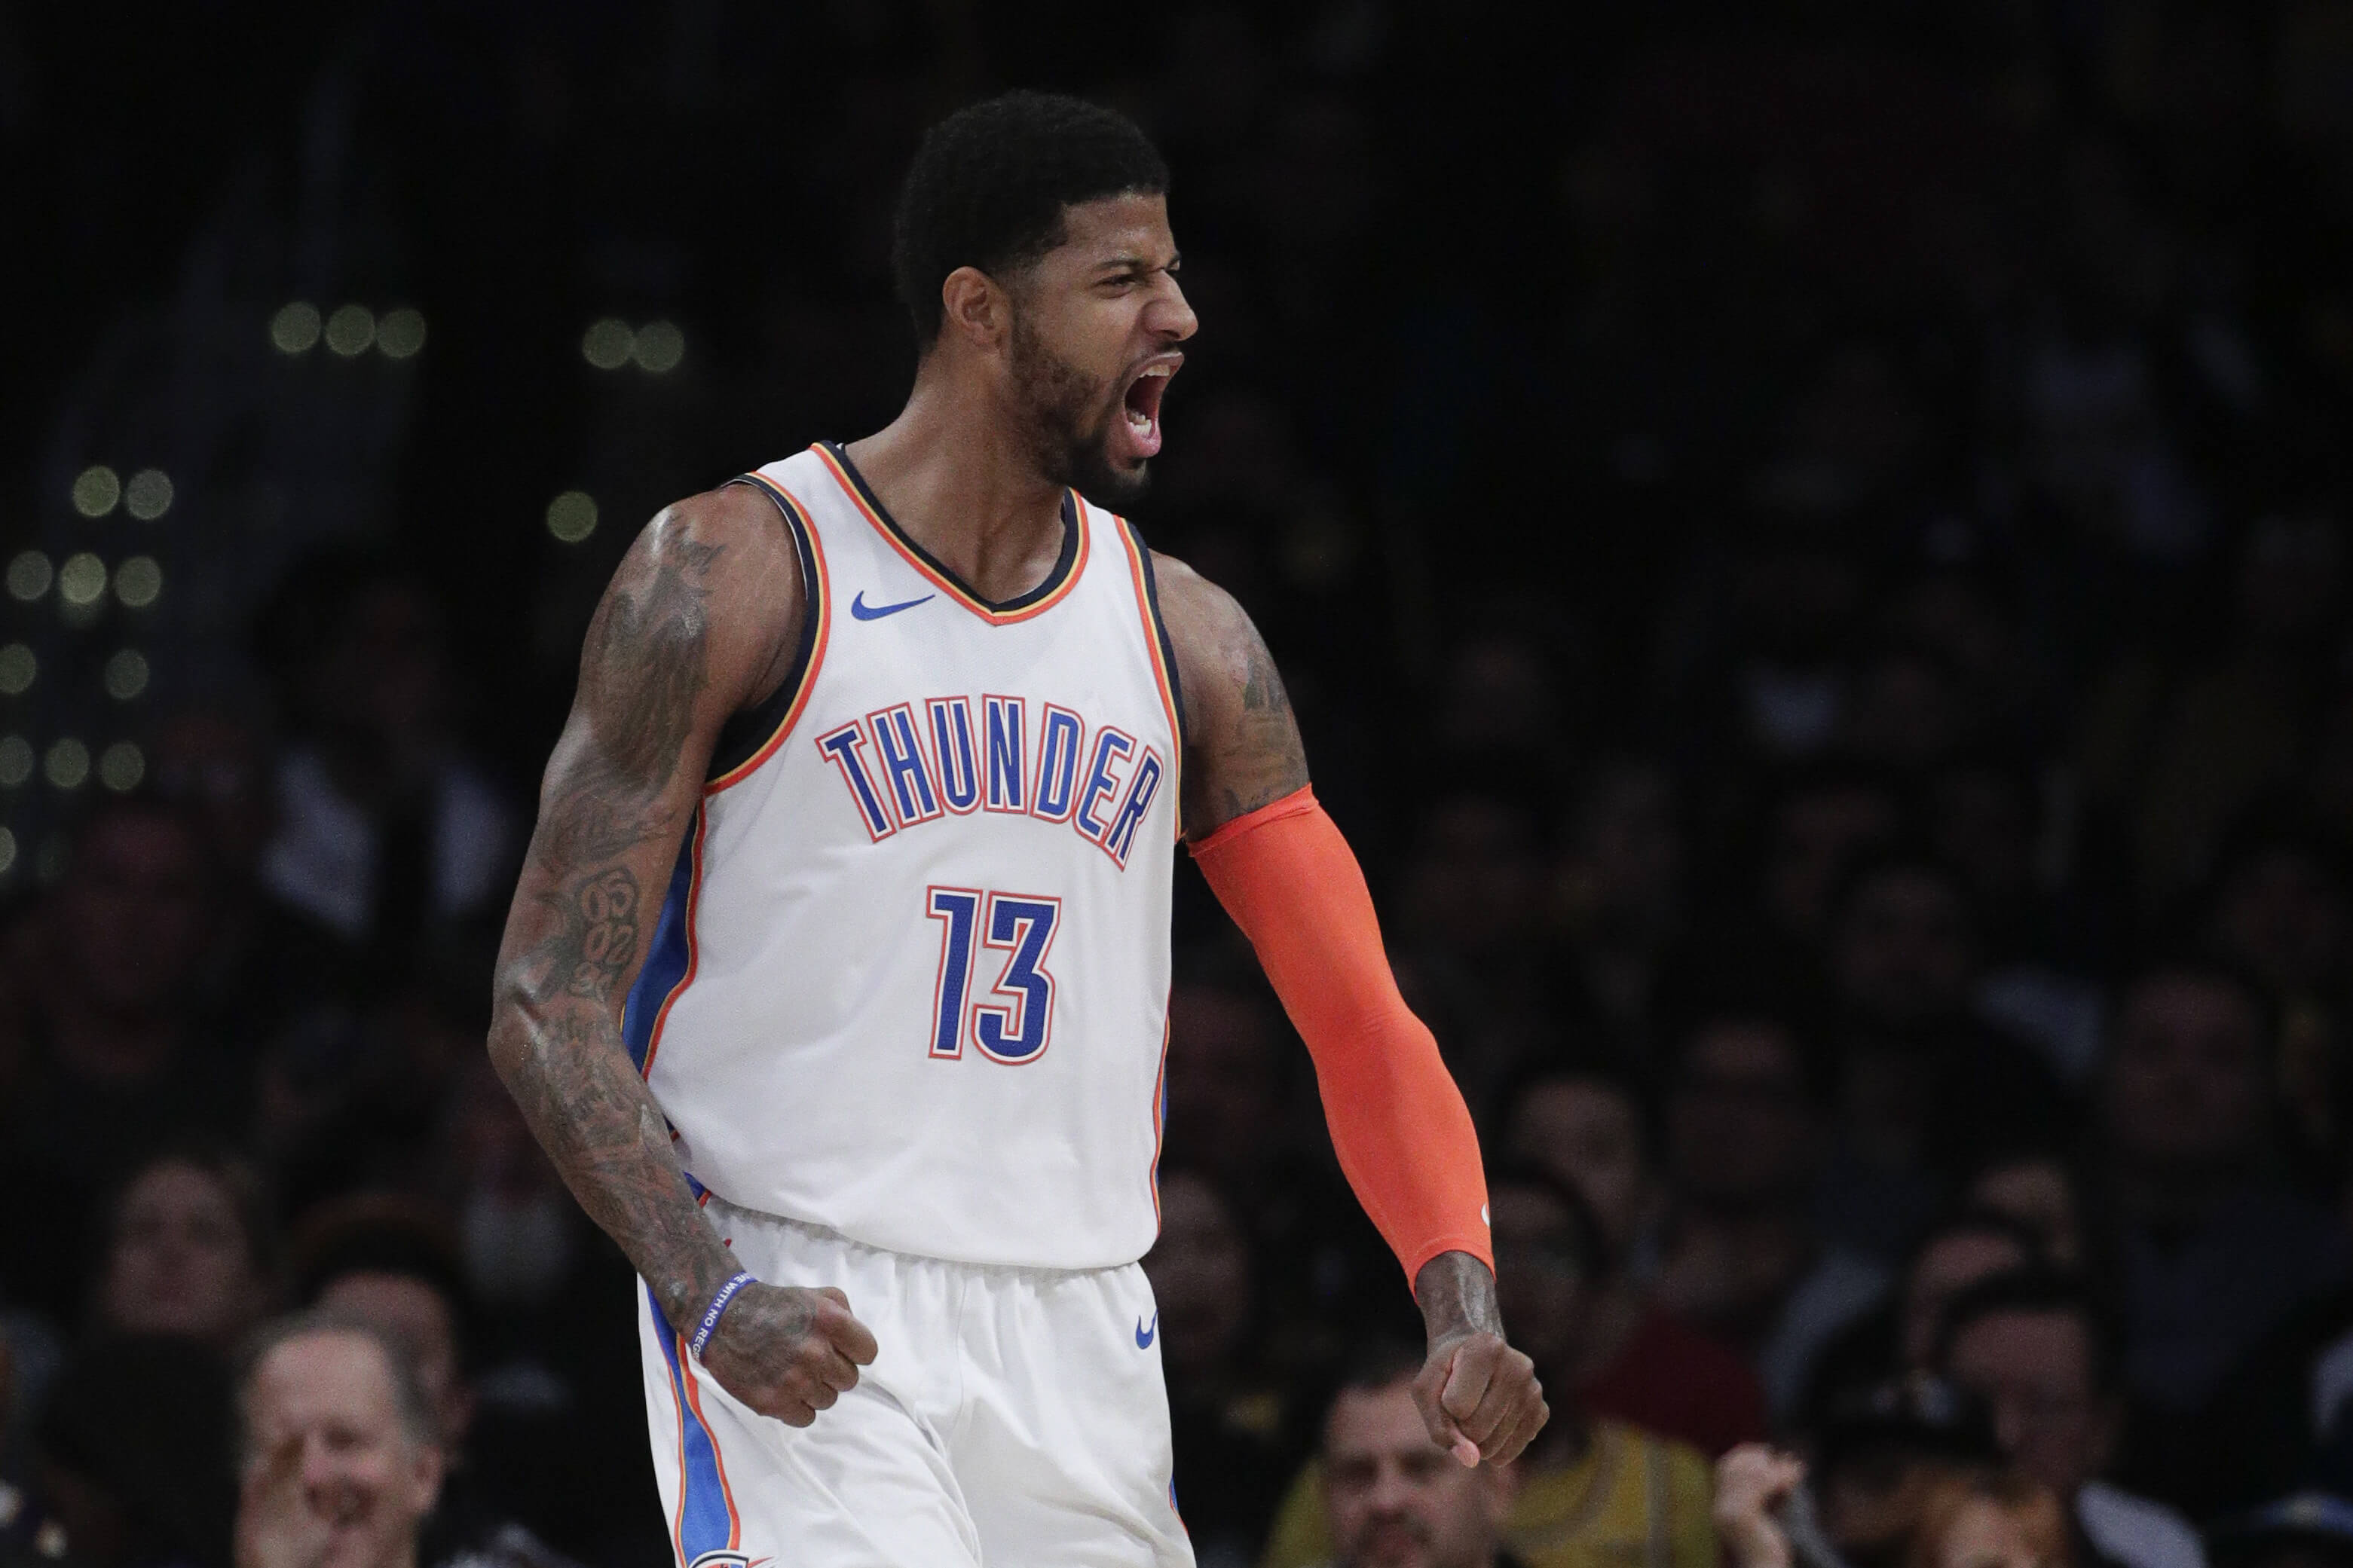 Oklahoma City Thunder's Paul George reacts after making a basket during the second half against the Lakers on Wednesday in Los Angeles.